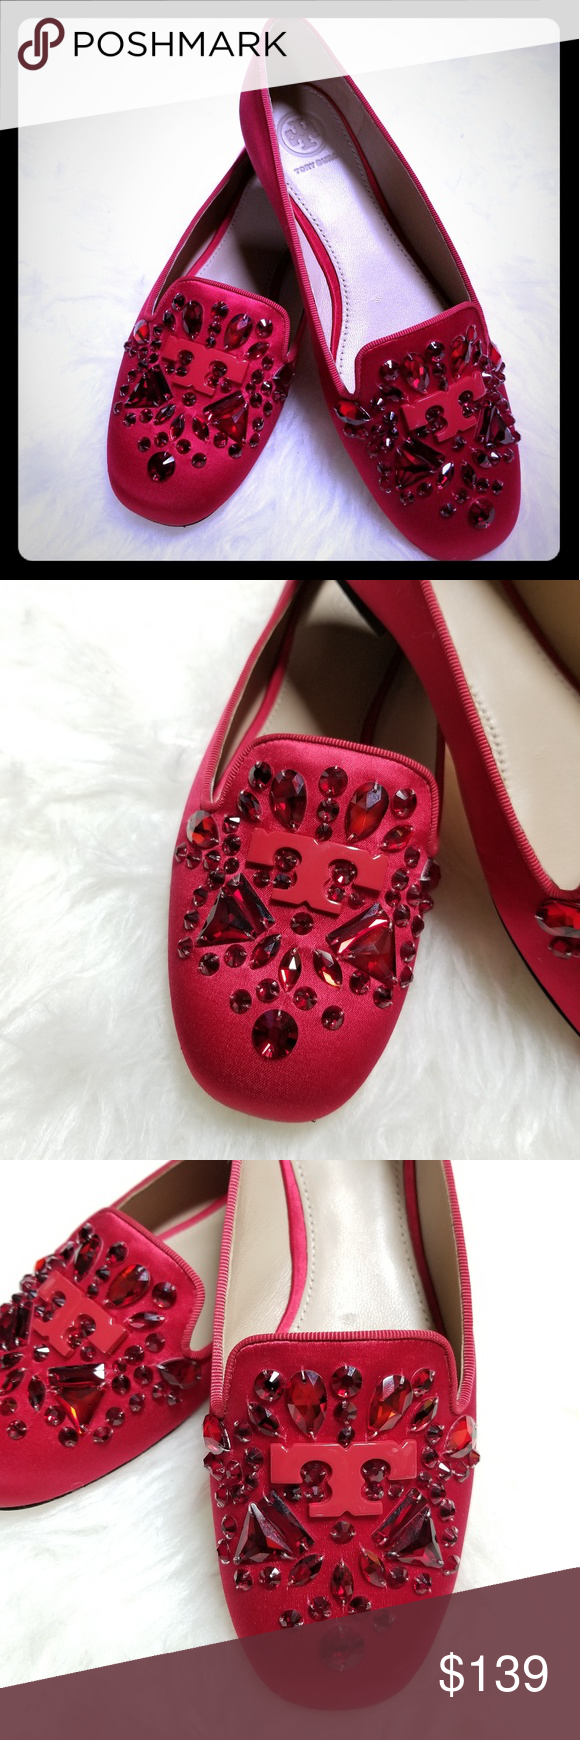 14f7e5dcee8 Tory Burch Delphine Embellished Red Loafers satin Scattered with sparkle